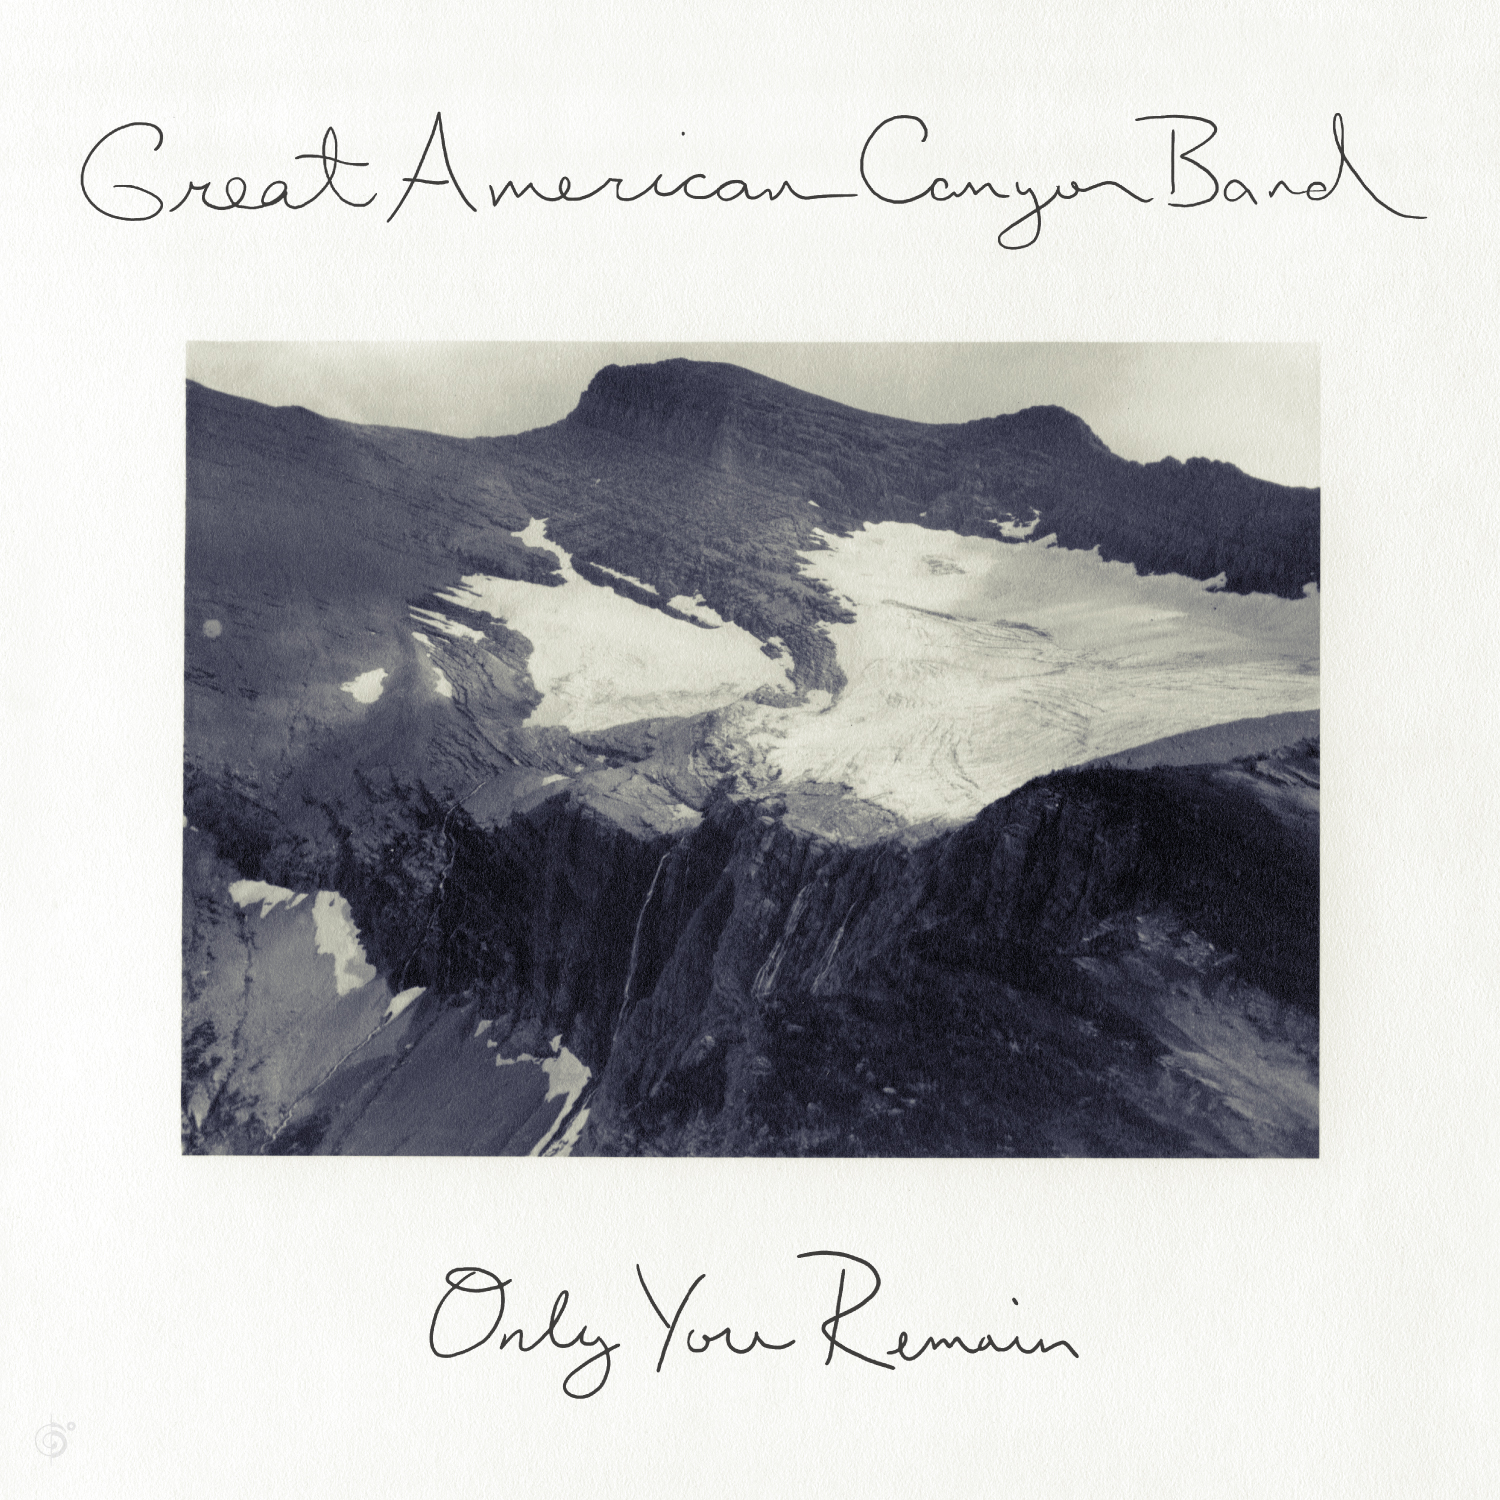 Great American Canyon Band's 'Crash' featured on NPR Music